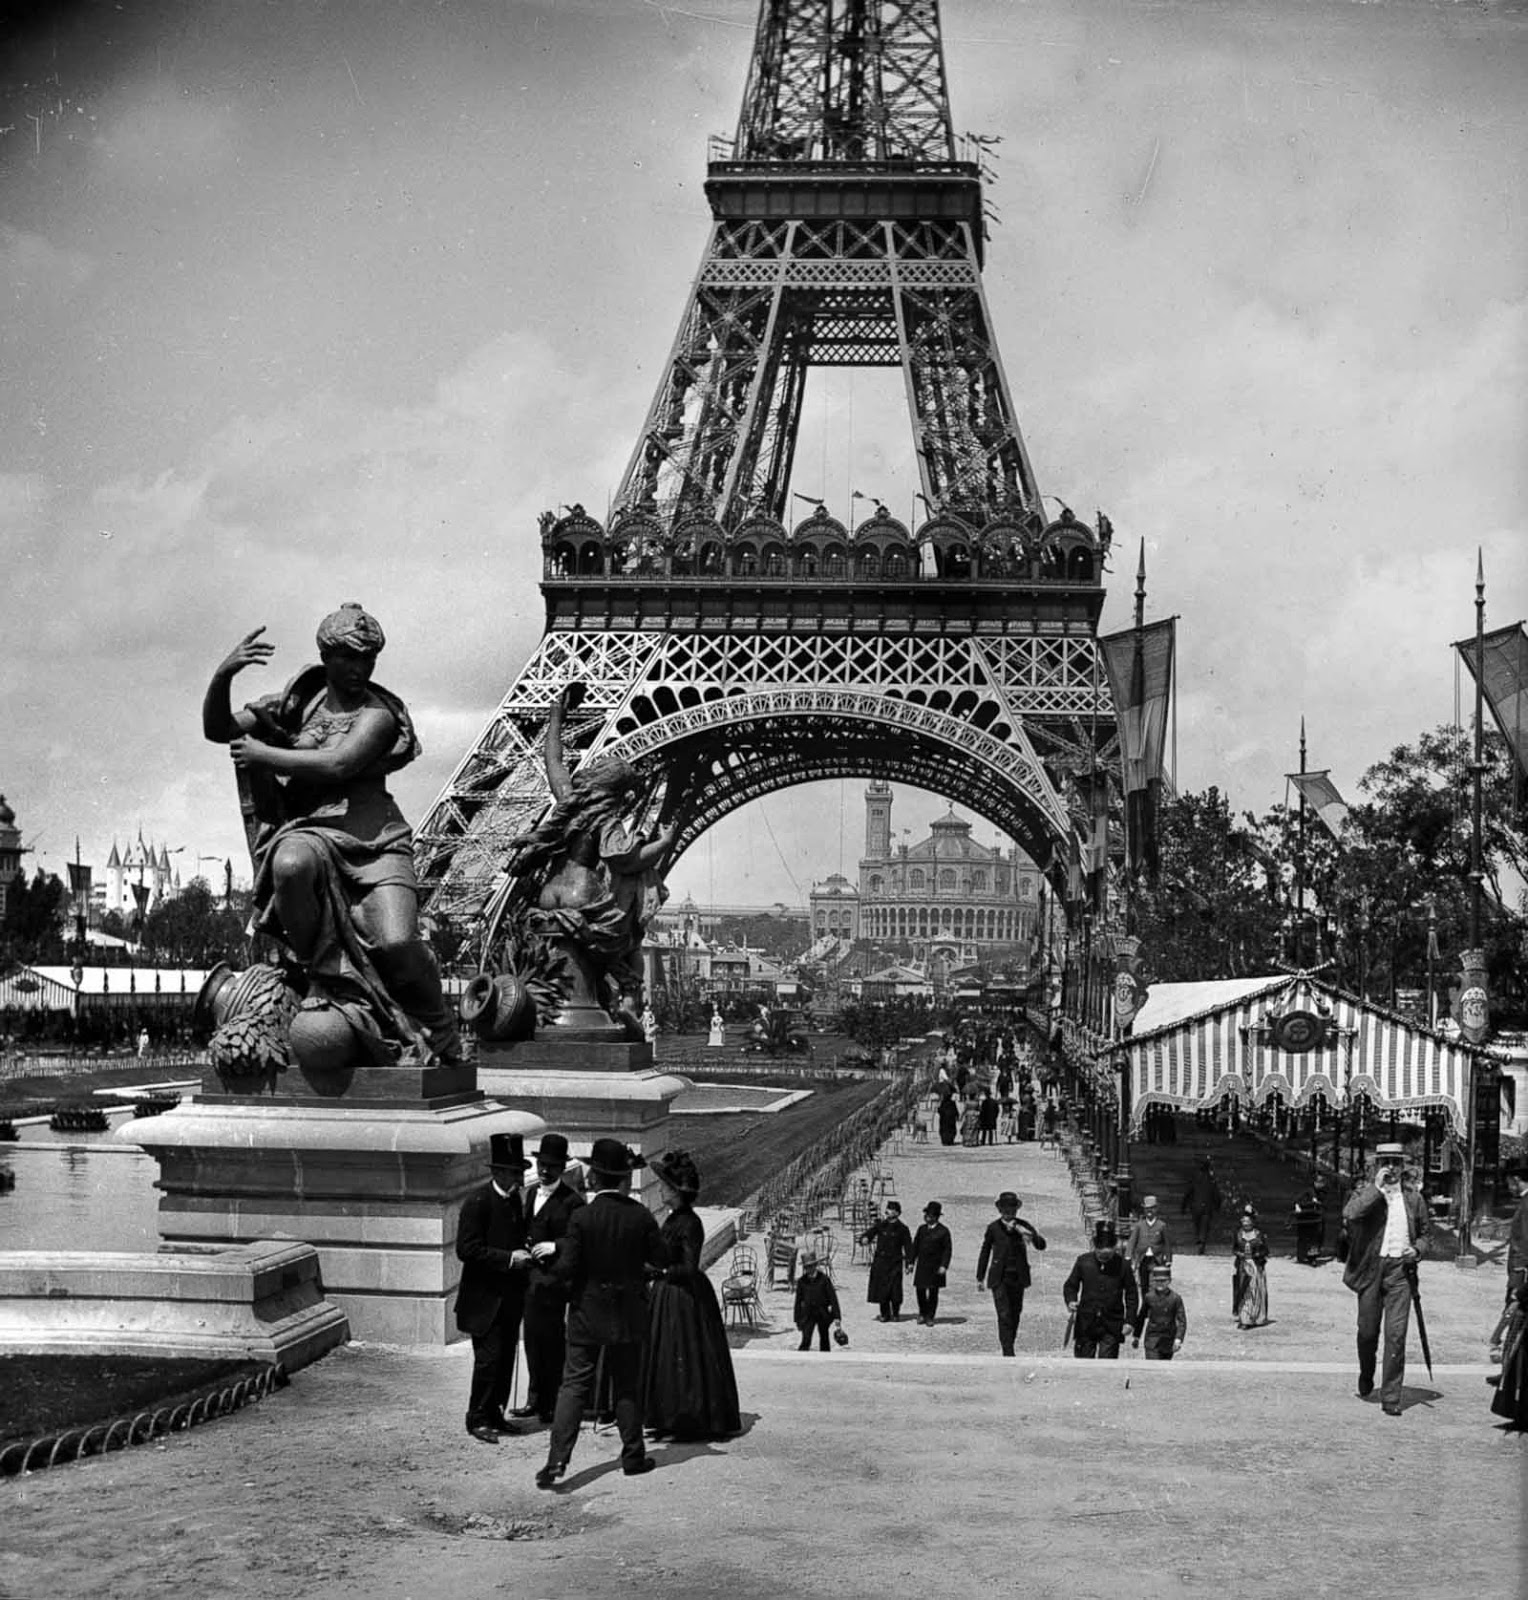 Eiffel had a permit for the tower to stand for 20 years; it was to be dismantled in 1909, when its ownership would revert to the City of Paris.